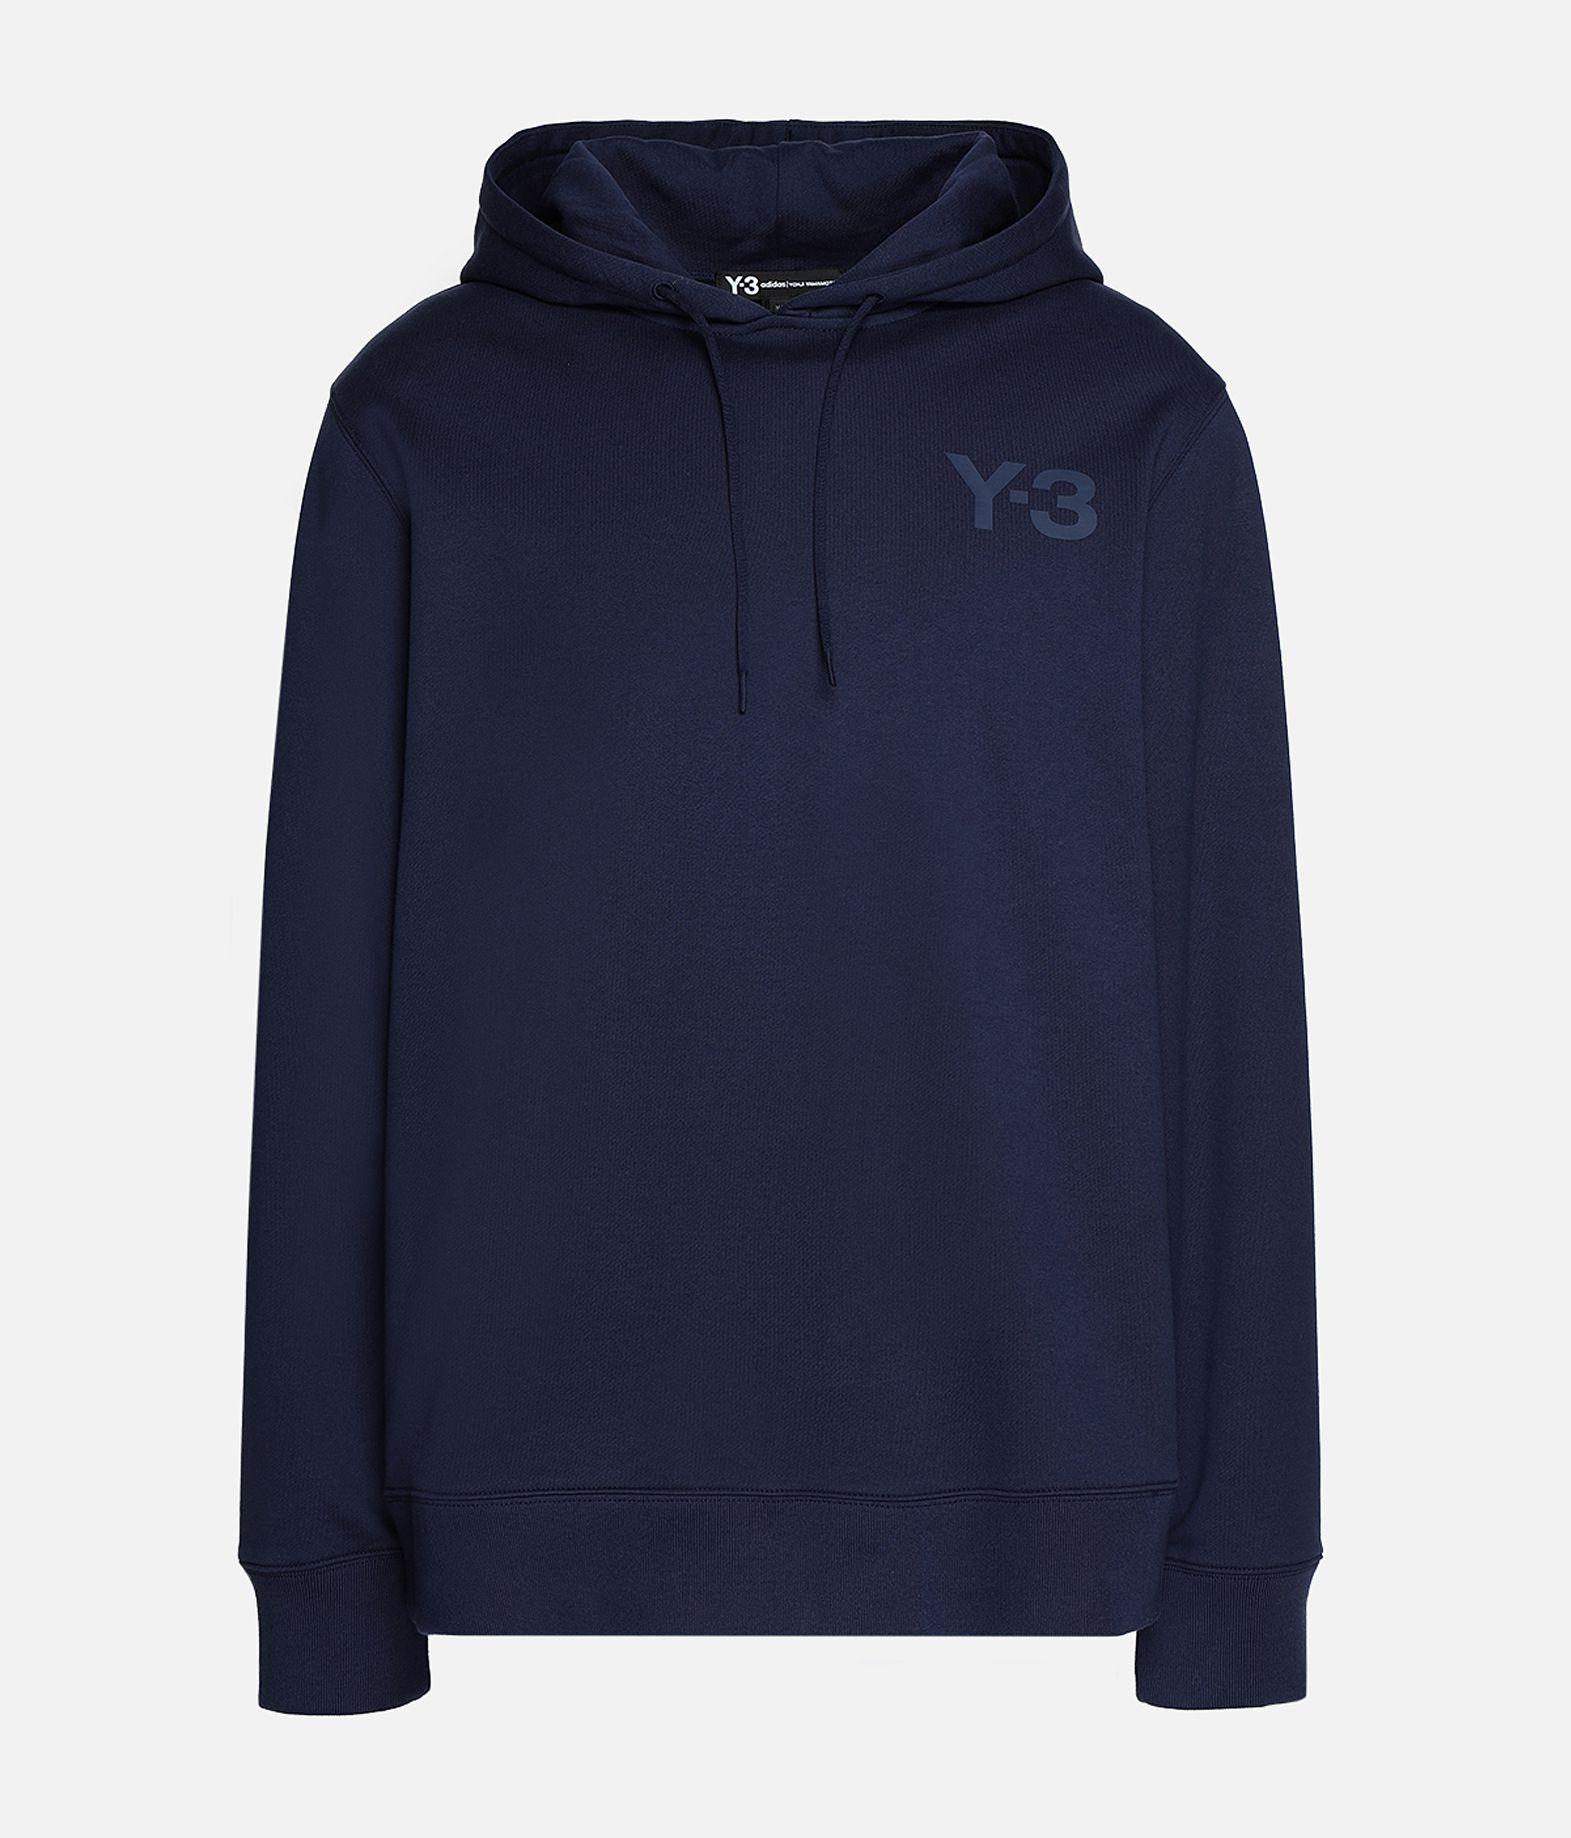 low priced 86c28 34a7f Y-3 Logo Hoodie